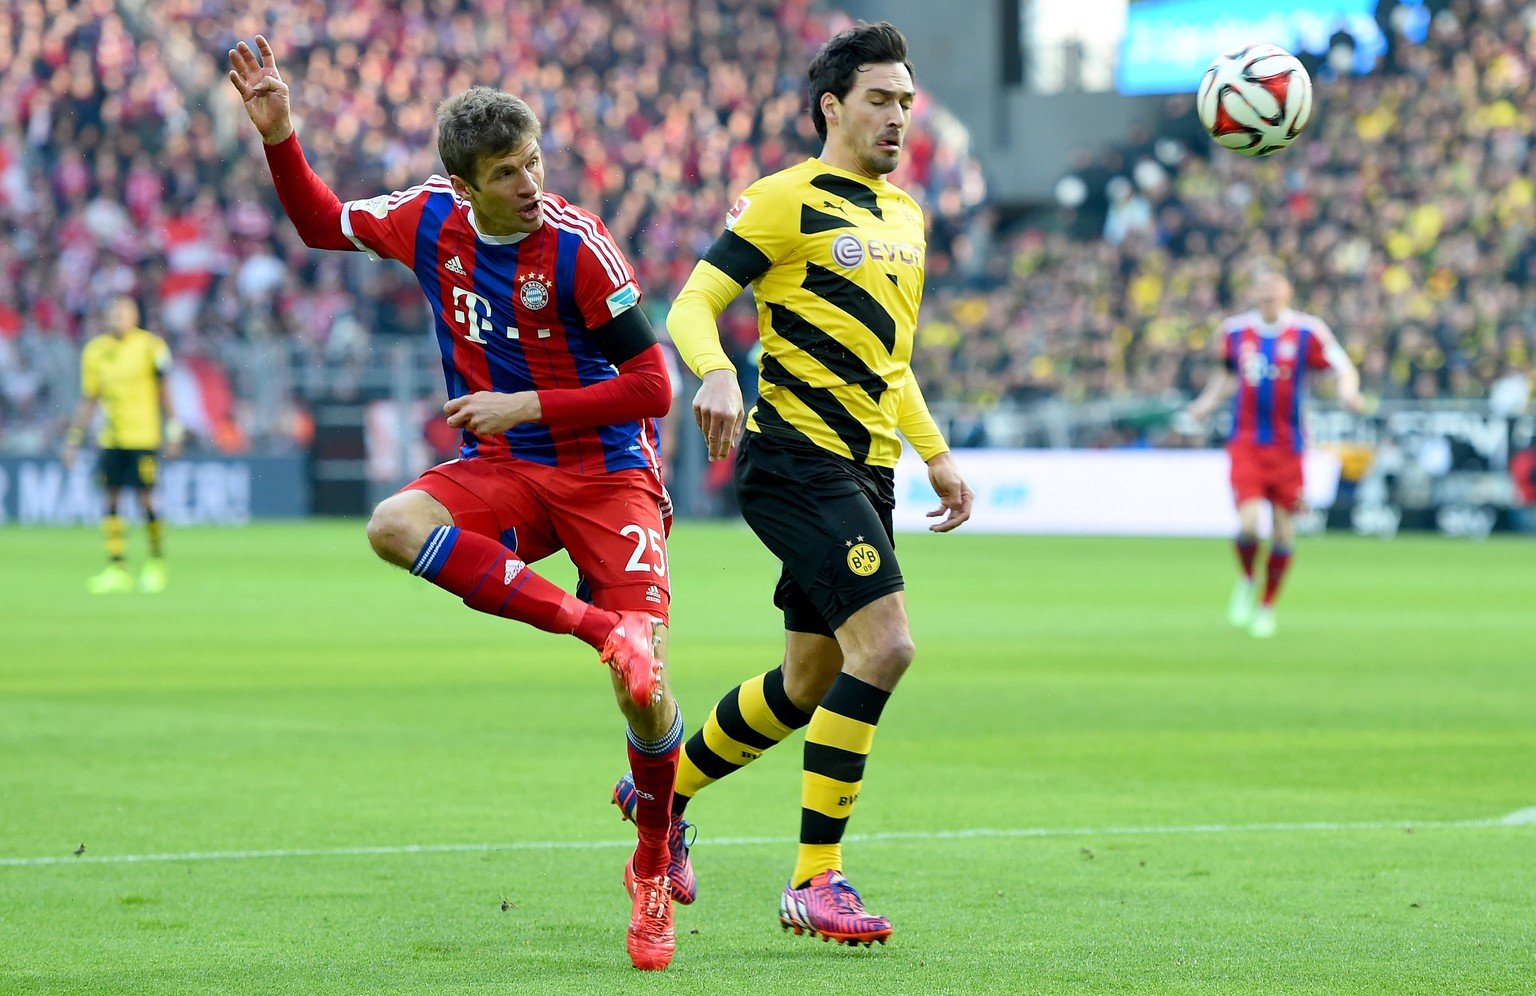 DORTMUND, GERMANY - APRIL 04: Thomas Mueller of Bayern Muenchen shoots on goal next to Mats Hummels of Borussia Dortmund during the Bundesliga match between Borussia Dortmund and FC Bayern Muenchen at Signal Iduna Park on April 4, 2015 in Dortmund, Germany.  (Photo by Lars Baron/Bongarts/Getty Images)